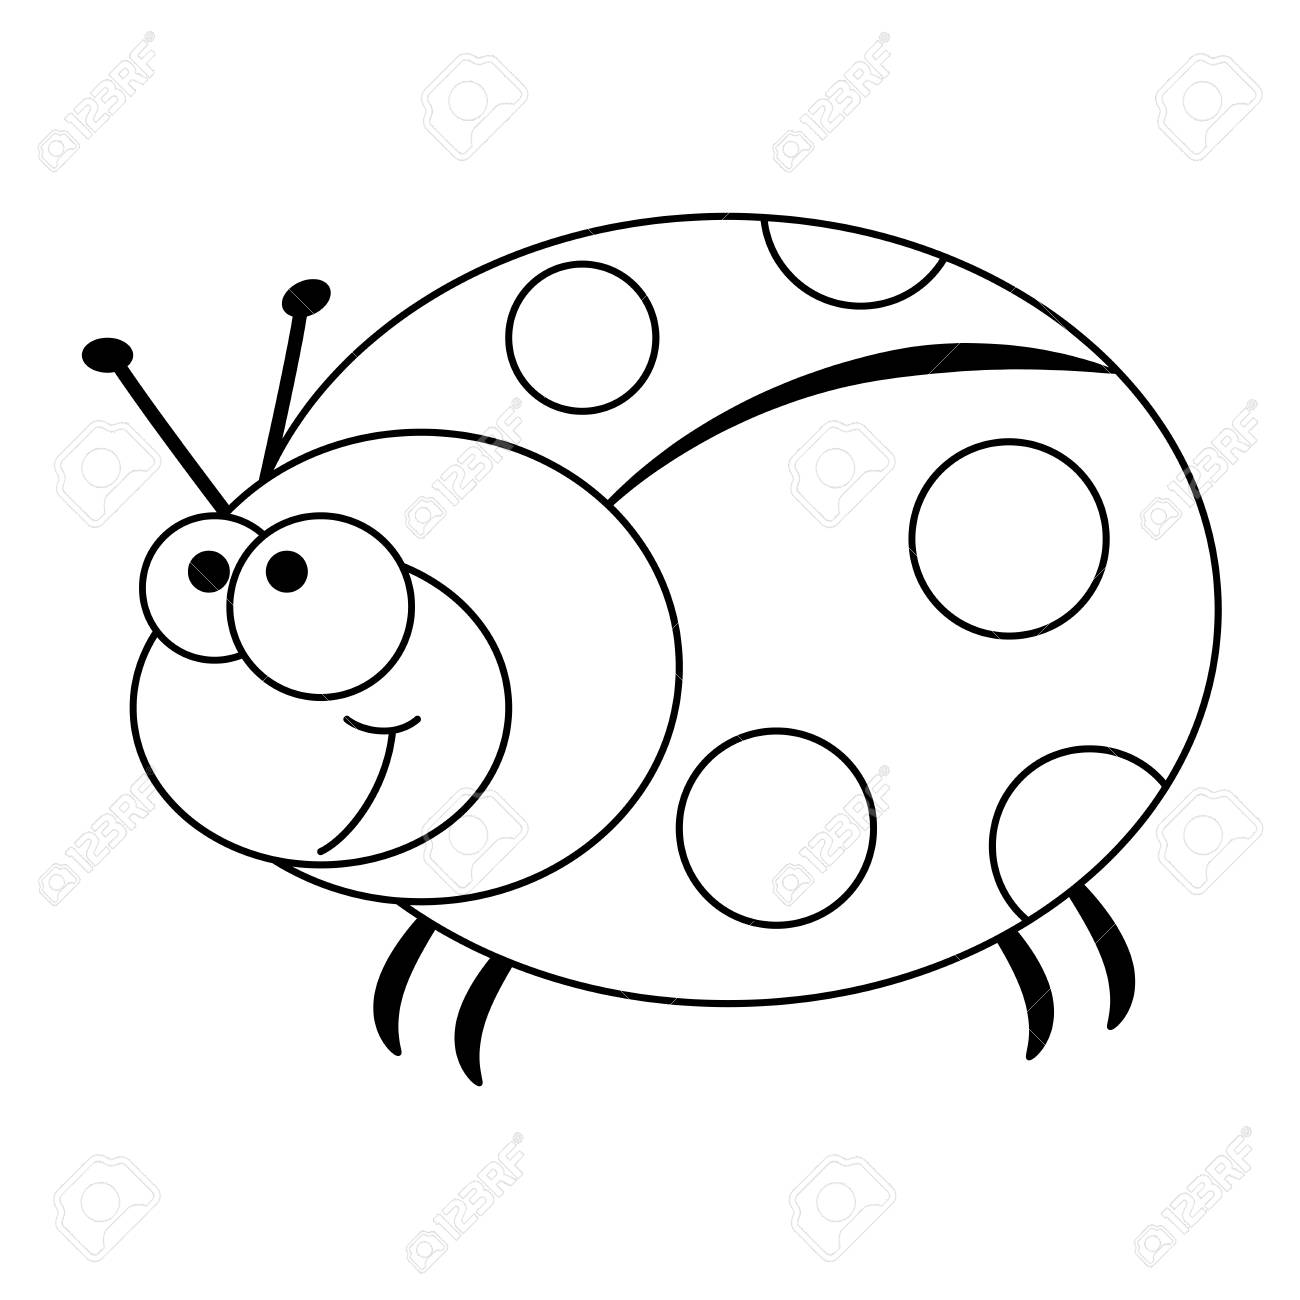 Colorless Funny Cartoon Ladybug Vector Illustration Coloring